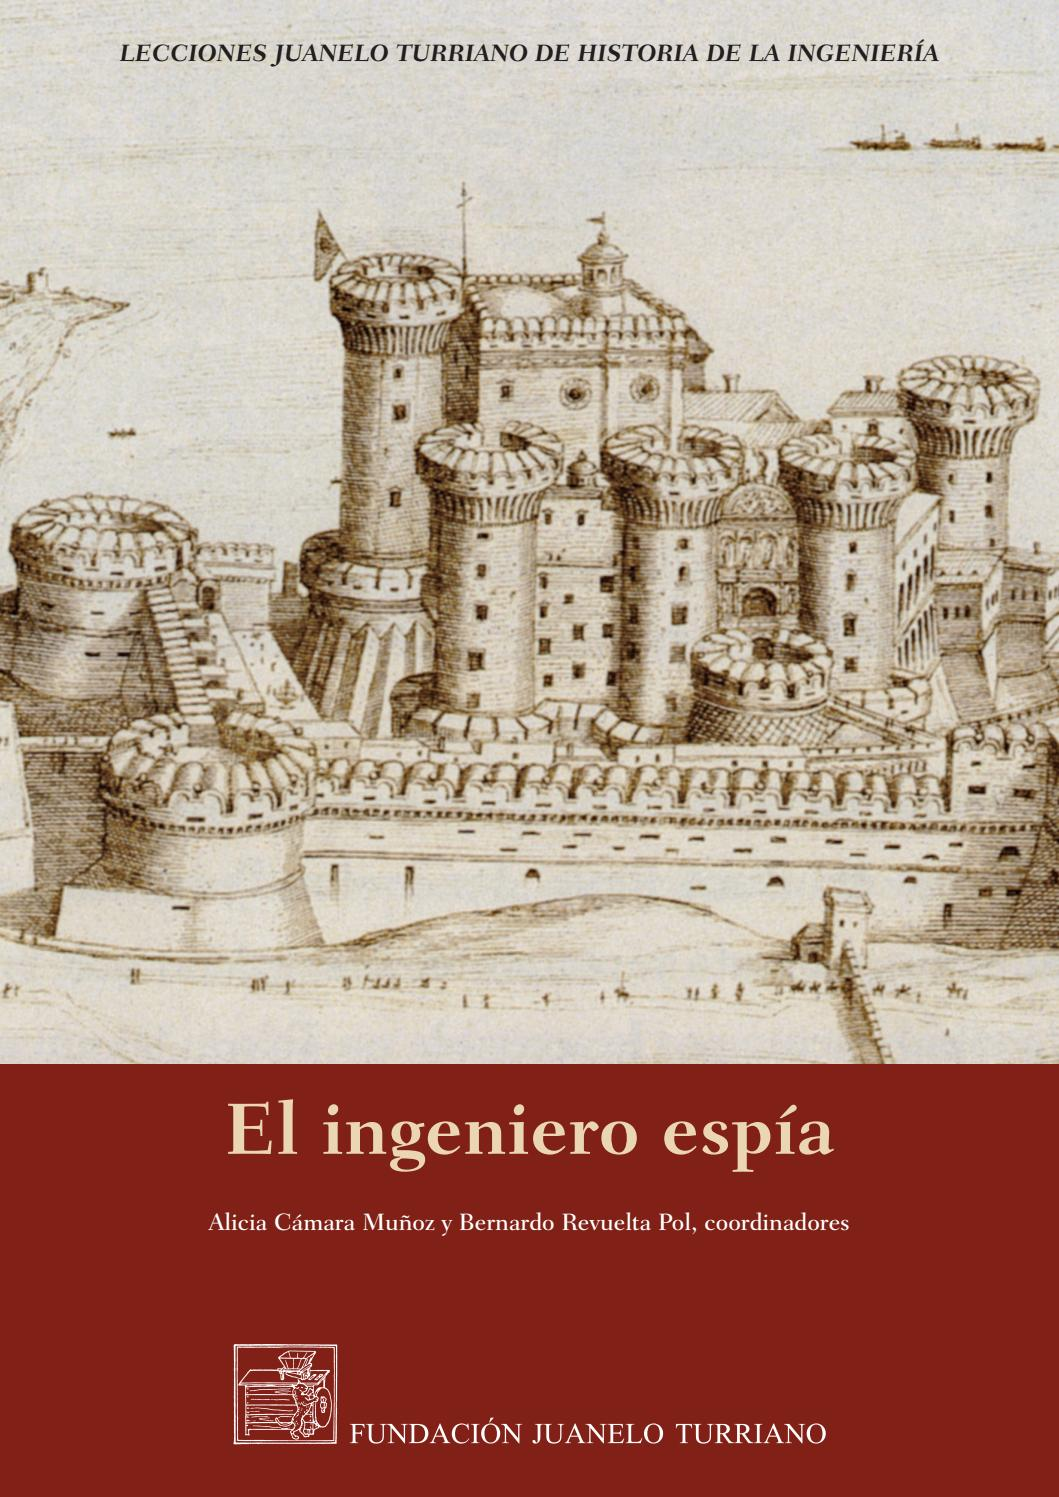 El ingeniero espia by FUNDACIÓN JUANELO TURRIANO - issuu